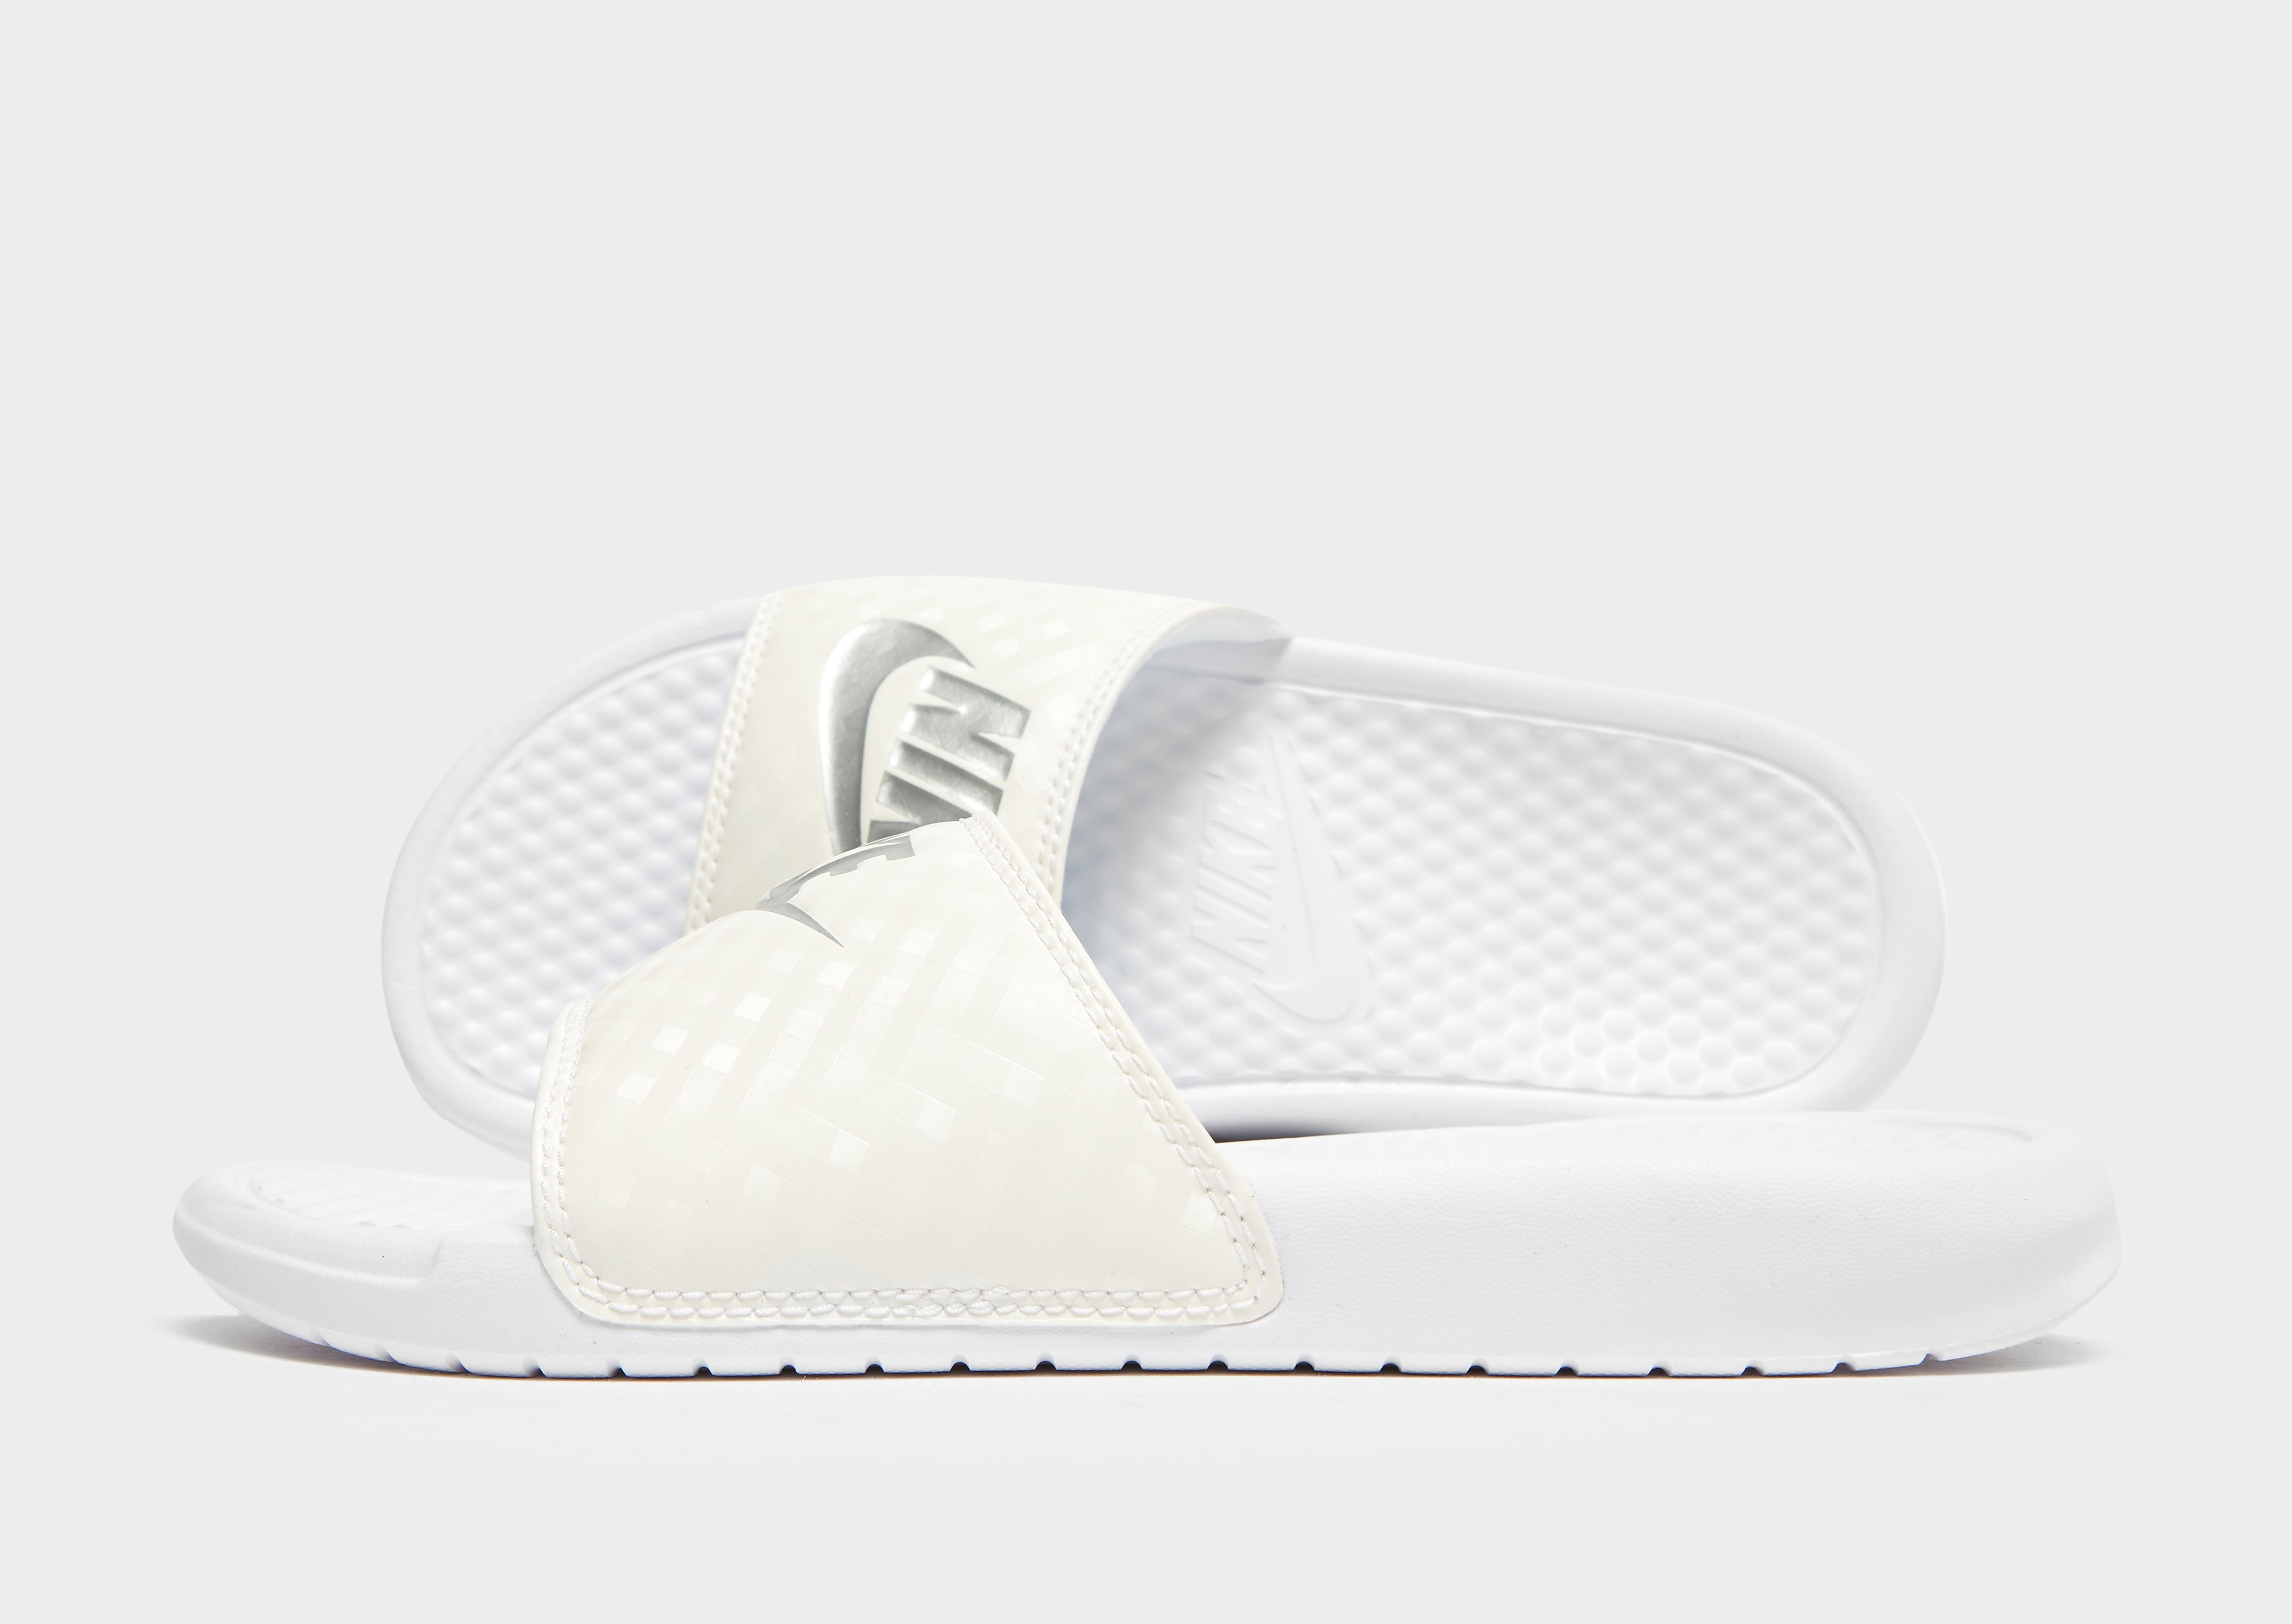 Nike Claquettes Benassi Just Do It Femme